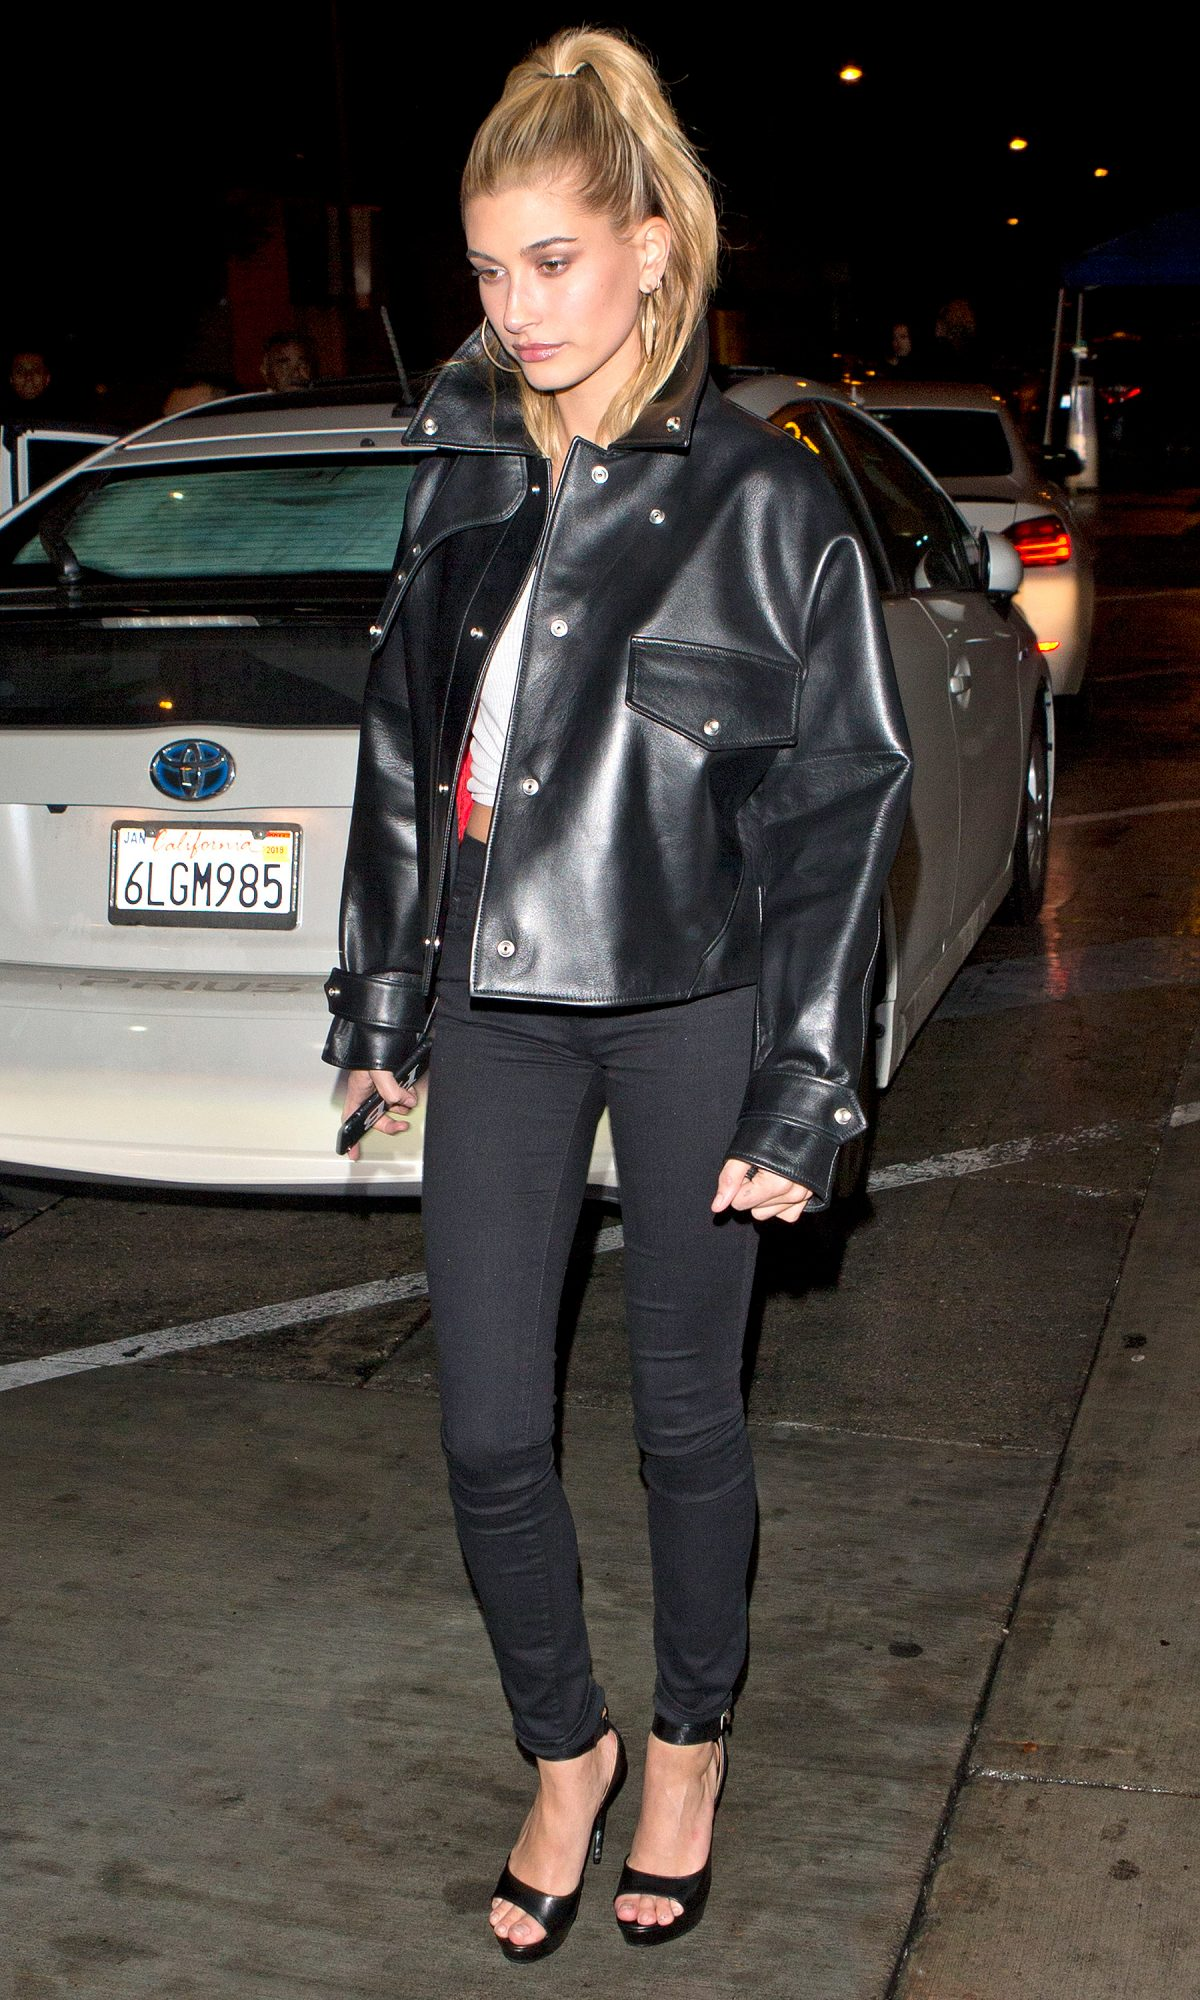 Hailey Baldwin seen on a date with BFF Kendall Jenners rumored Ex Lakers Star Boyfriend Jordan Clarkson at 'Catch' Restaurant in West Hollywood, CA